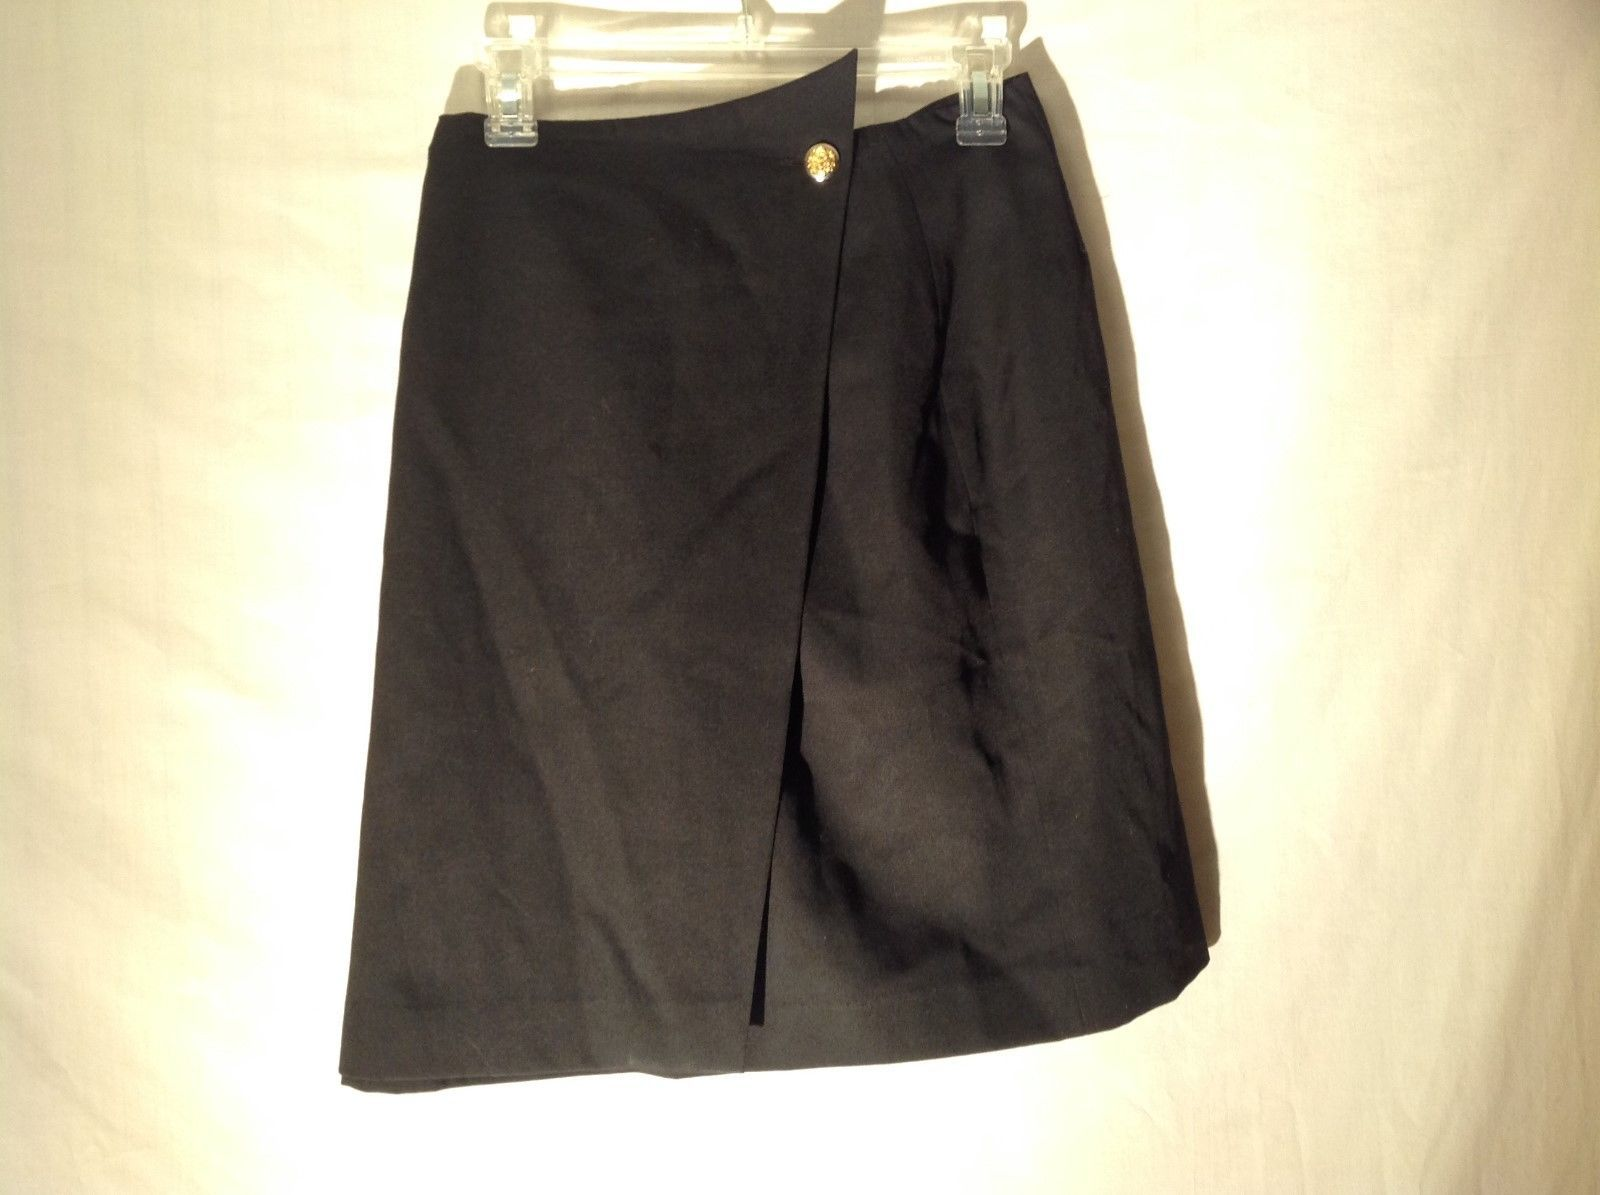 Nipon Studio Women's Black Skirt Size 12